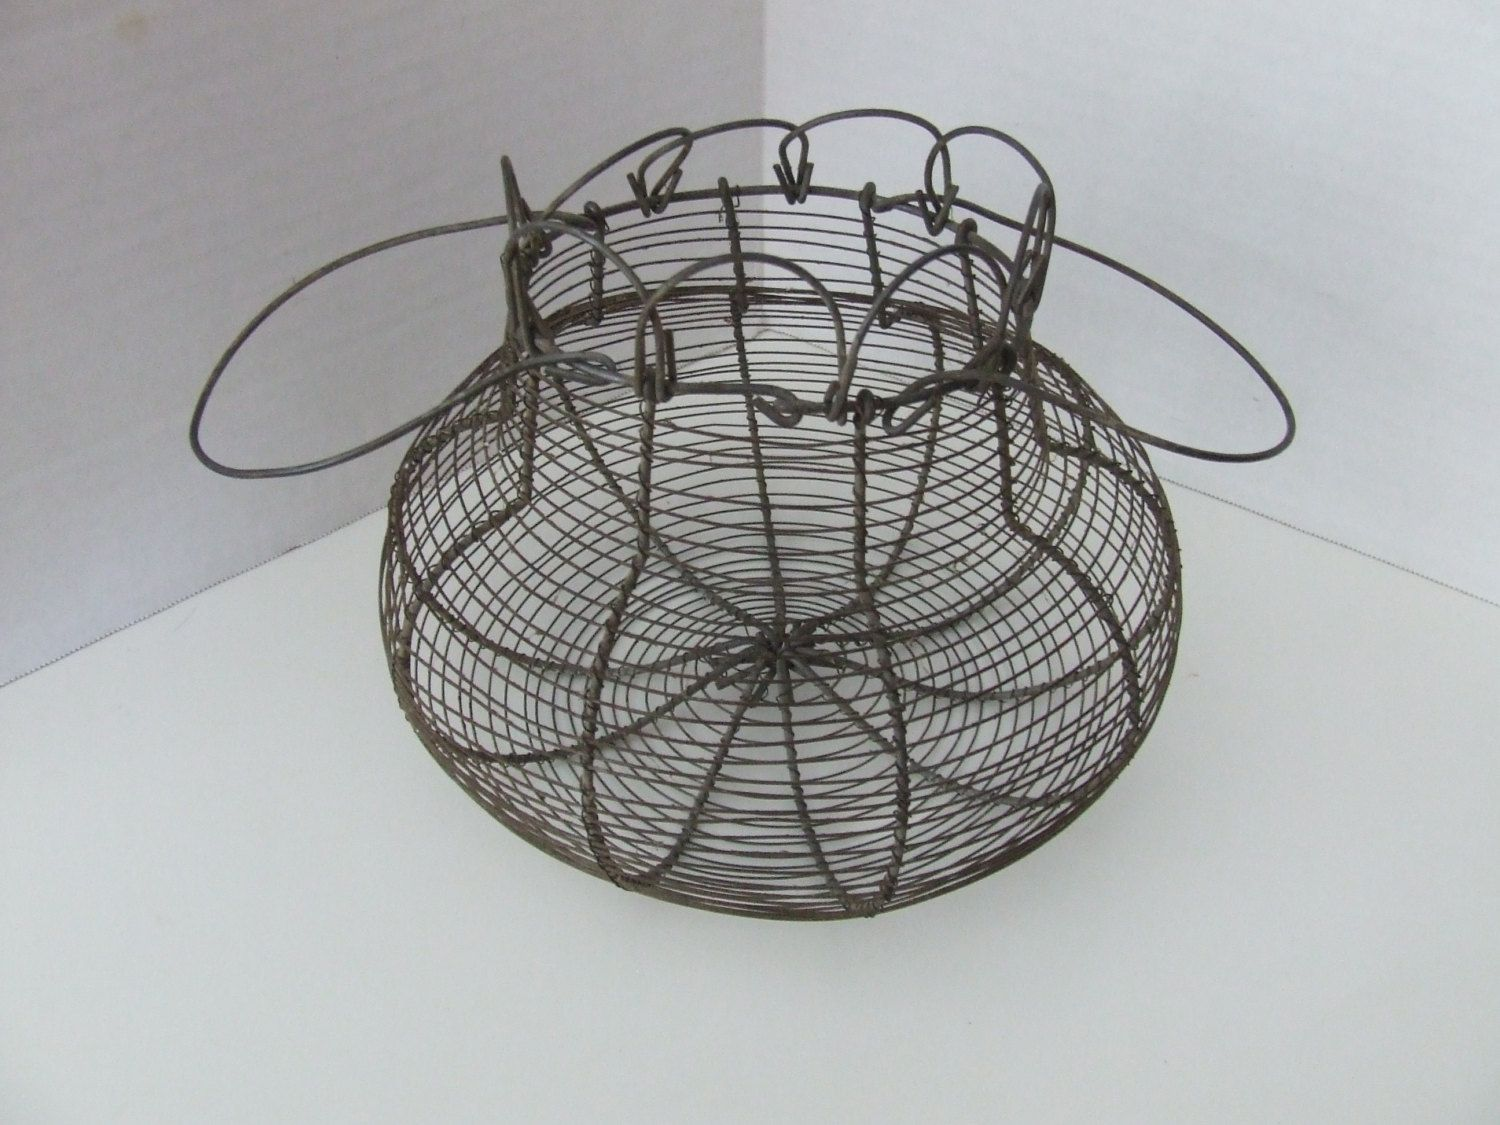 Vintage Wire basket, French Wire Basket, Egg Basket, Vintage Garden ...